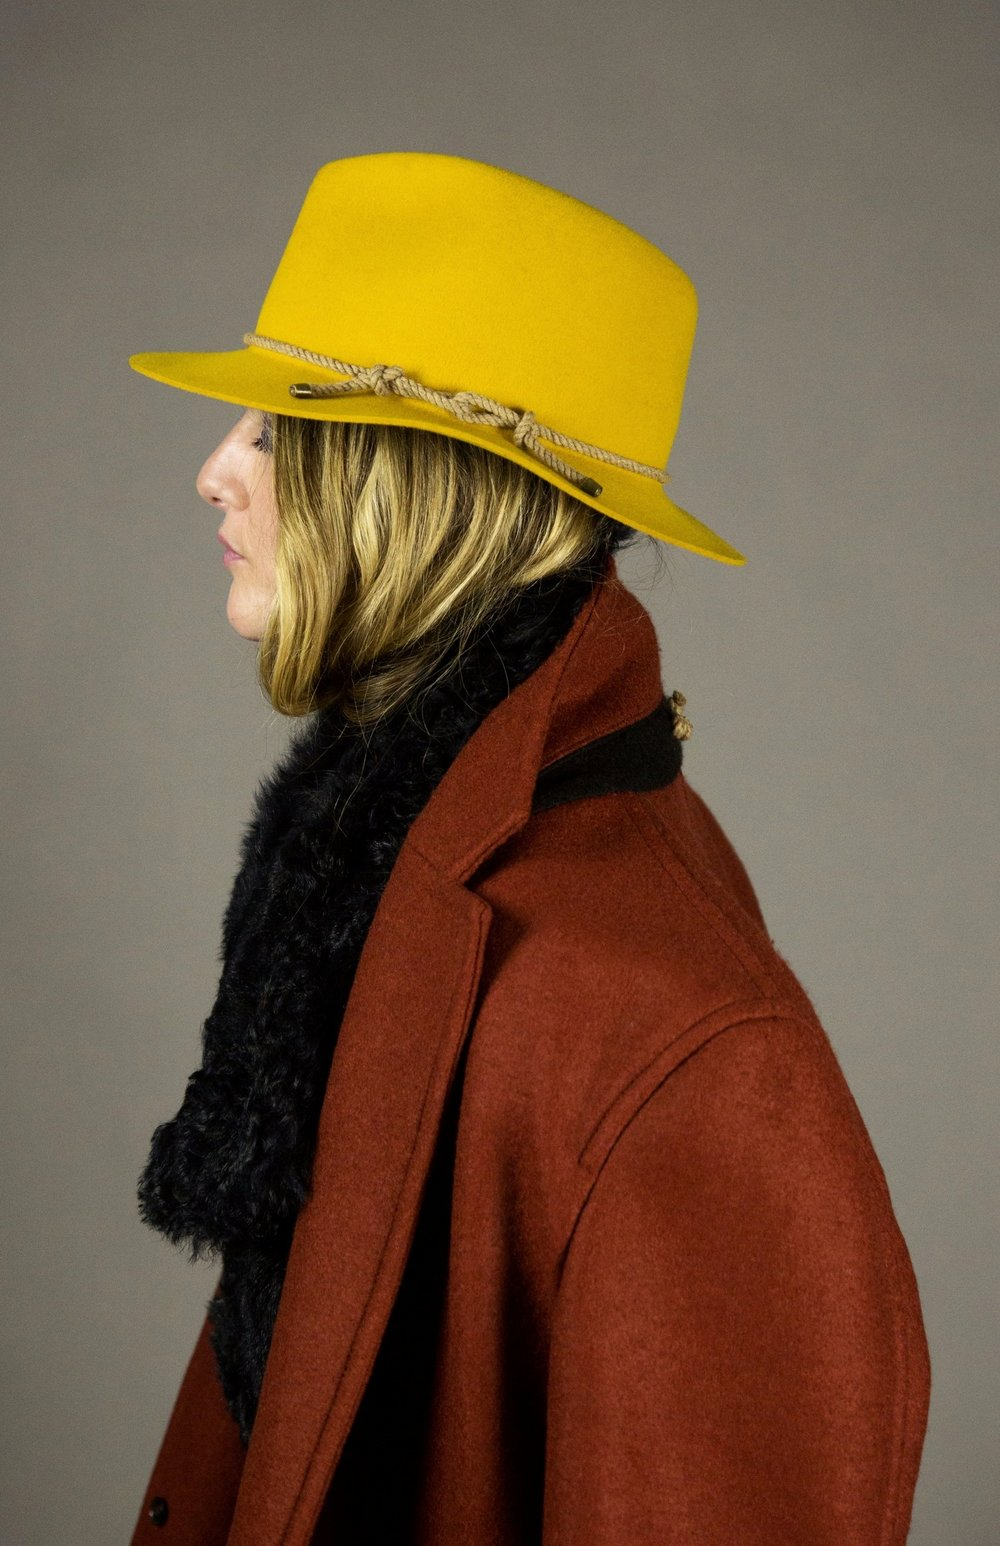 hat 1 gold  felted fedora with signature natural melange rope detail and brass metal tips. made in collaboration with bollman hats, the oldest hat manufacturer in america.  sizes 1-2  100% felted wool  100% cotton interior band in our signature khaki twill